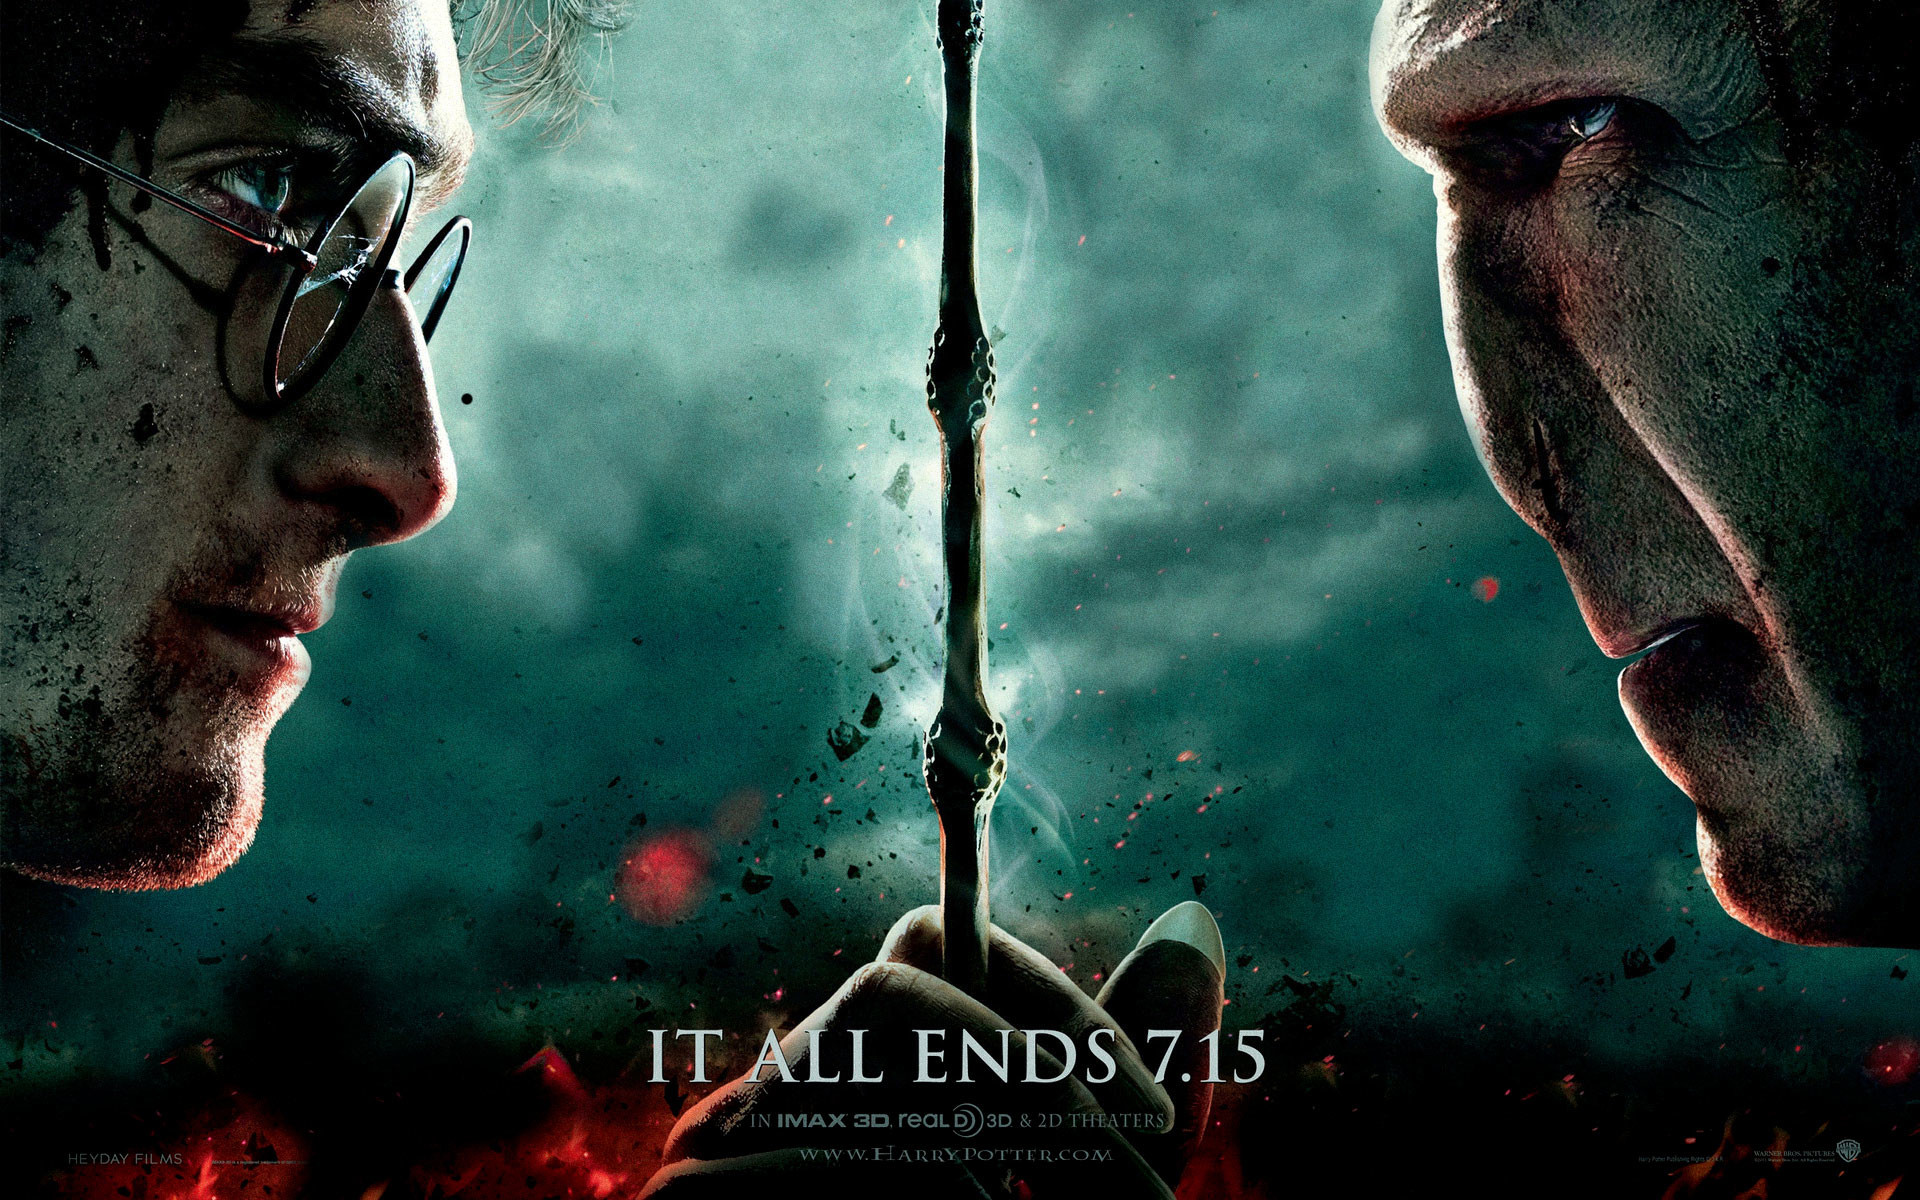 Cool Wallpaper Harry Potter Facebook - 714513-gorgerous-voldemort-wallpapers-1920x1200  Image_487859.jpg